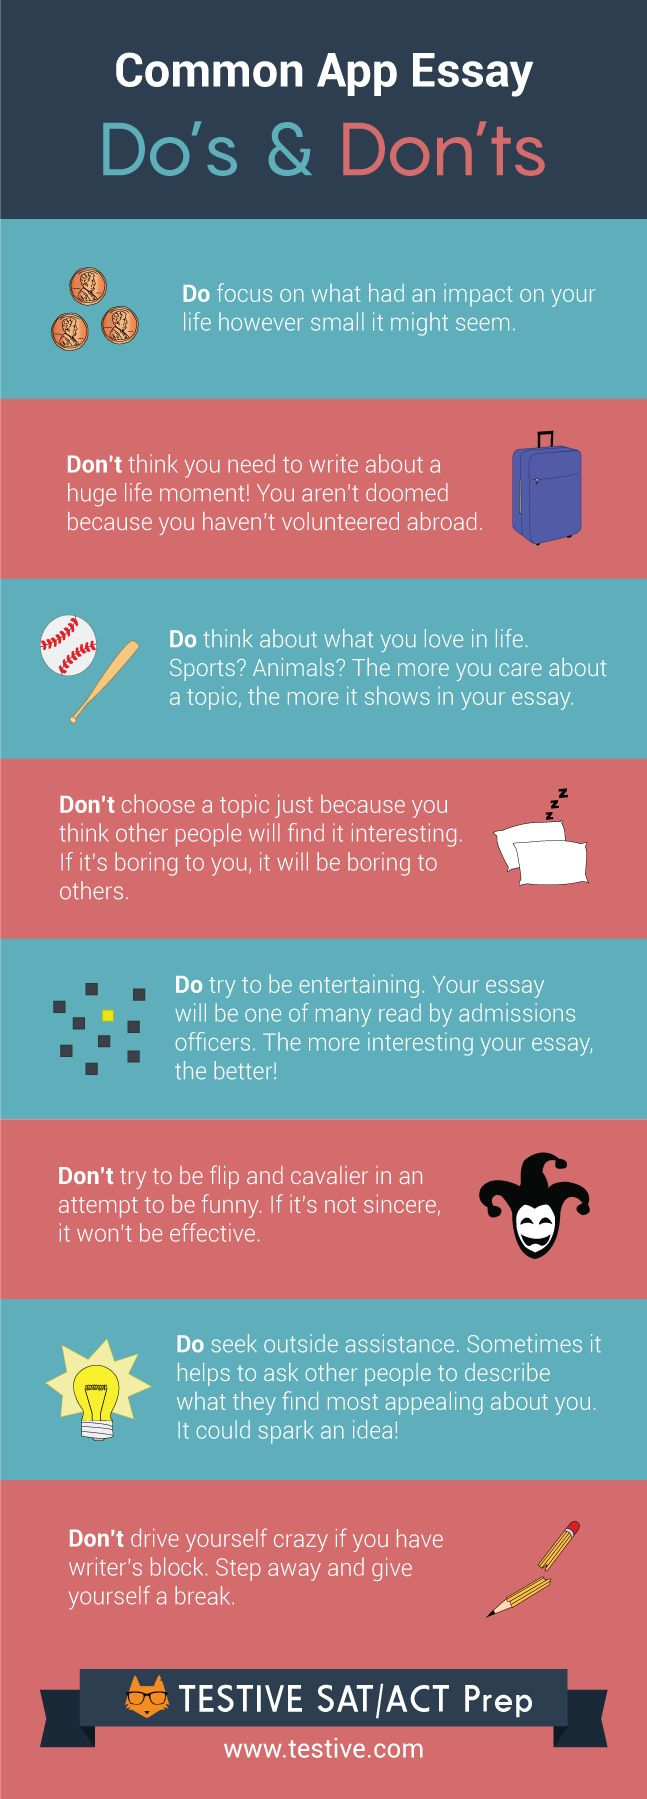 best college essay tips ideas essay tips life  law of attraction quotes college essaycollege lifecollege